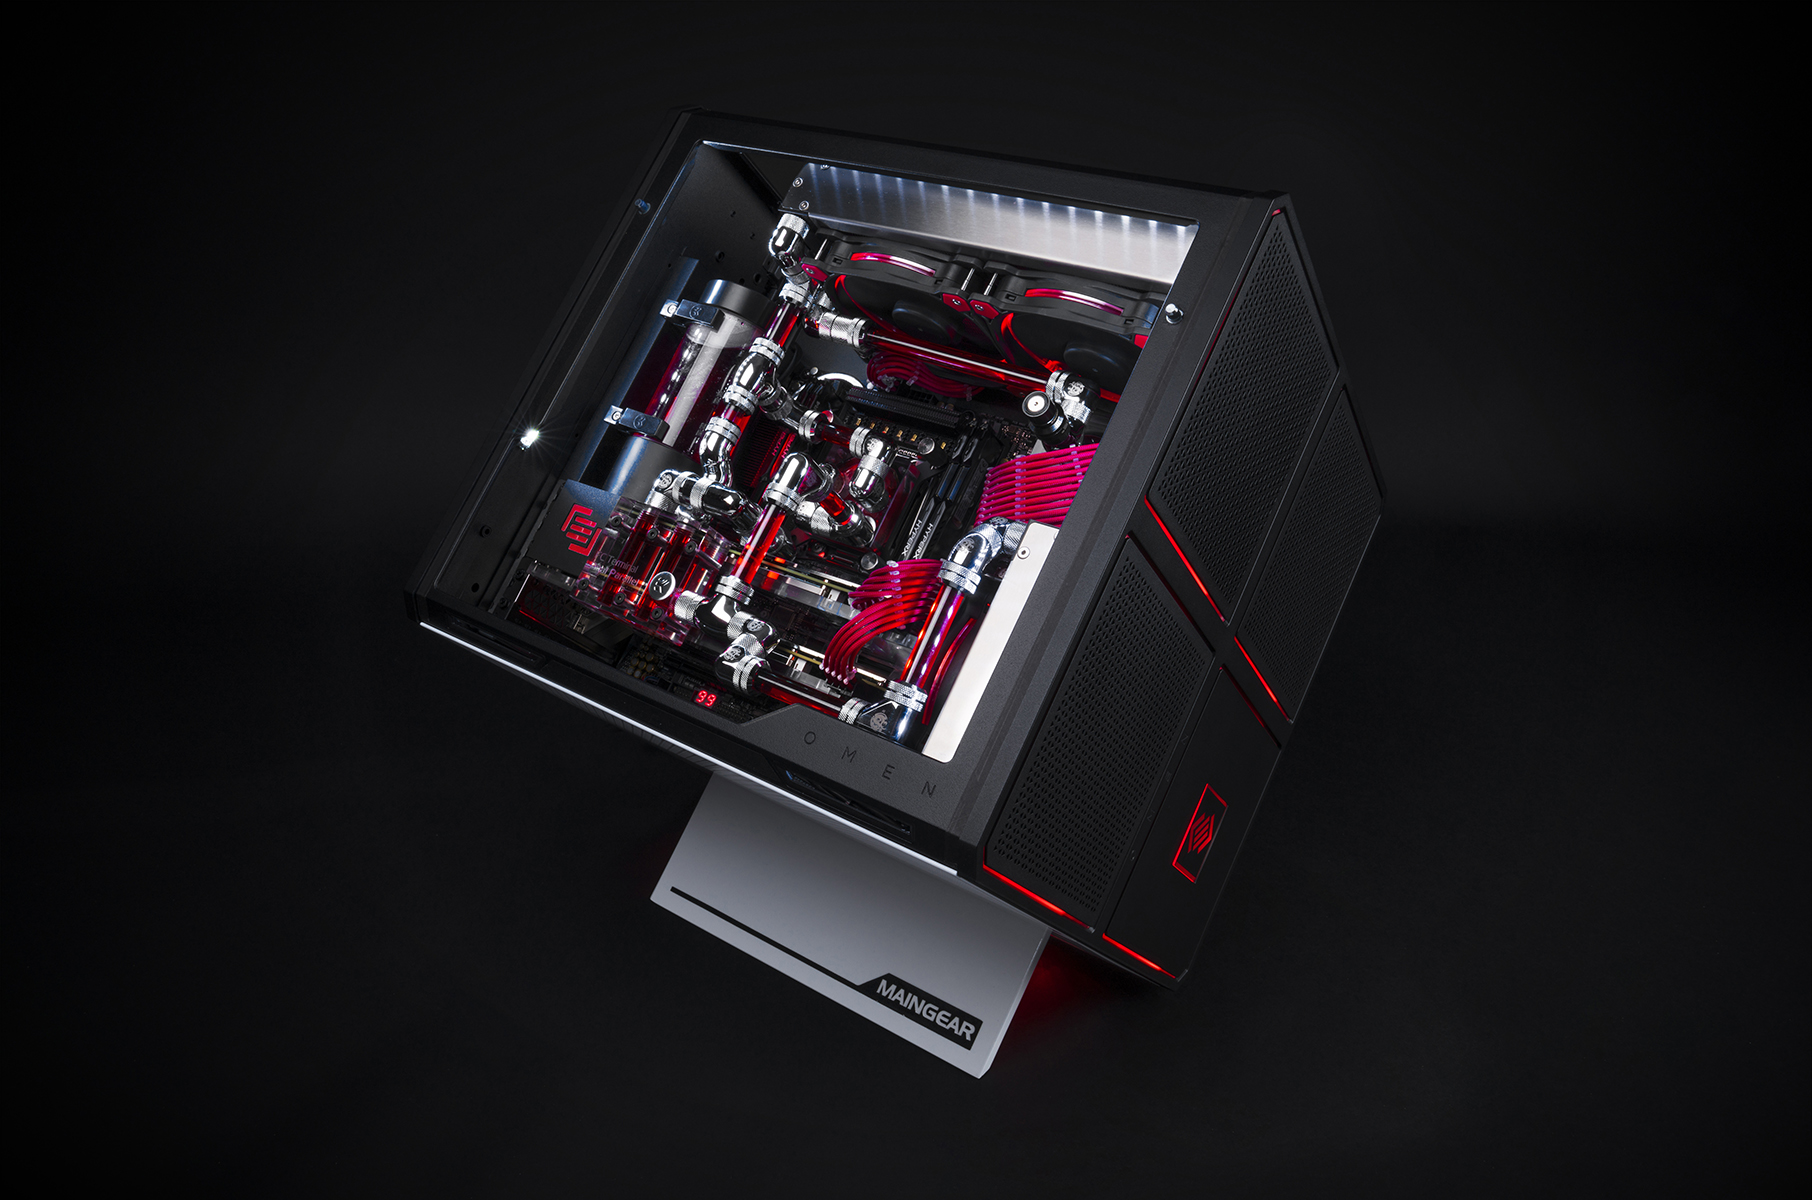 HP and MAINGEAR Team Up for Omen X High-End Gaming PC